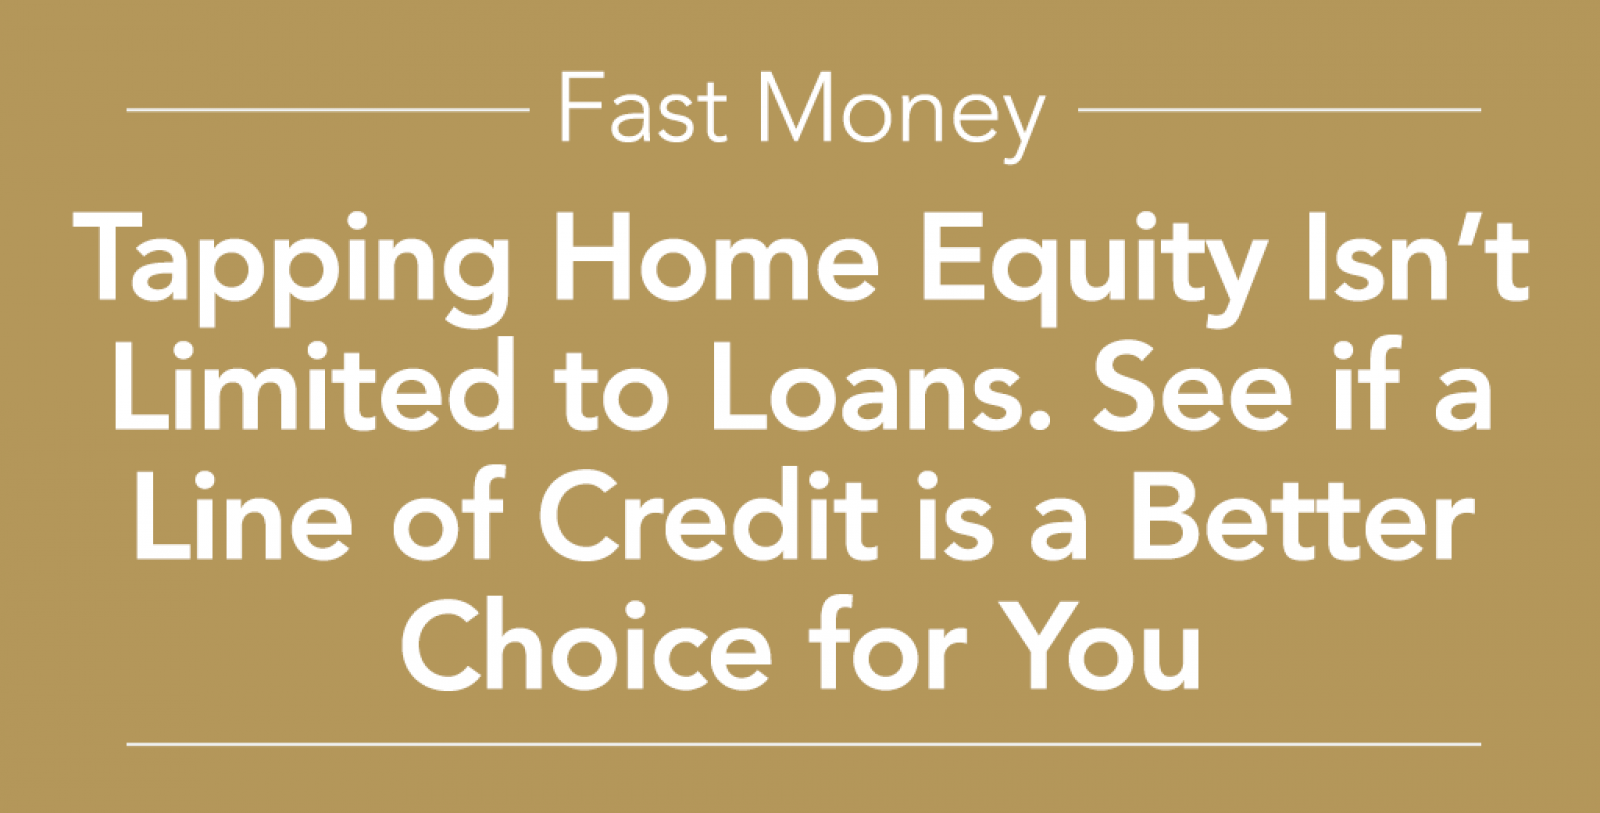 Fast Money Home Equity